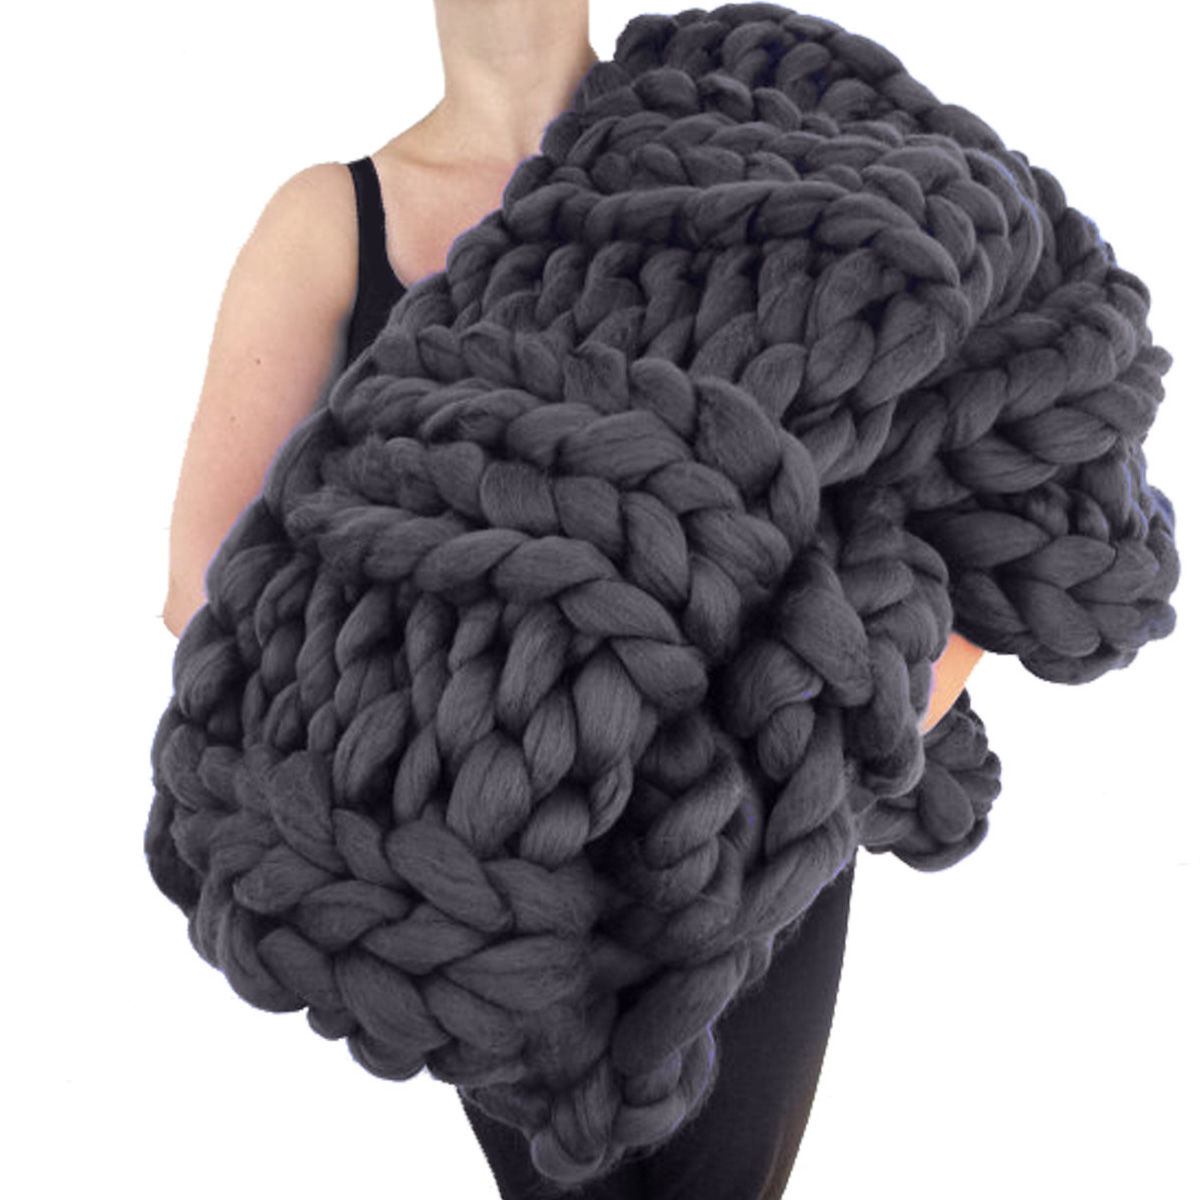 Giant Knitting Blankets : Giant super chunky knit wool blanket the green head